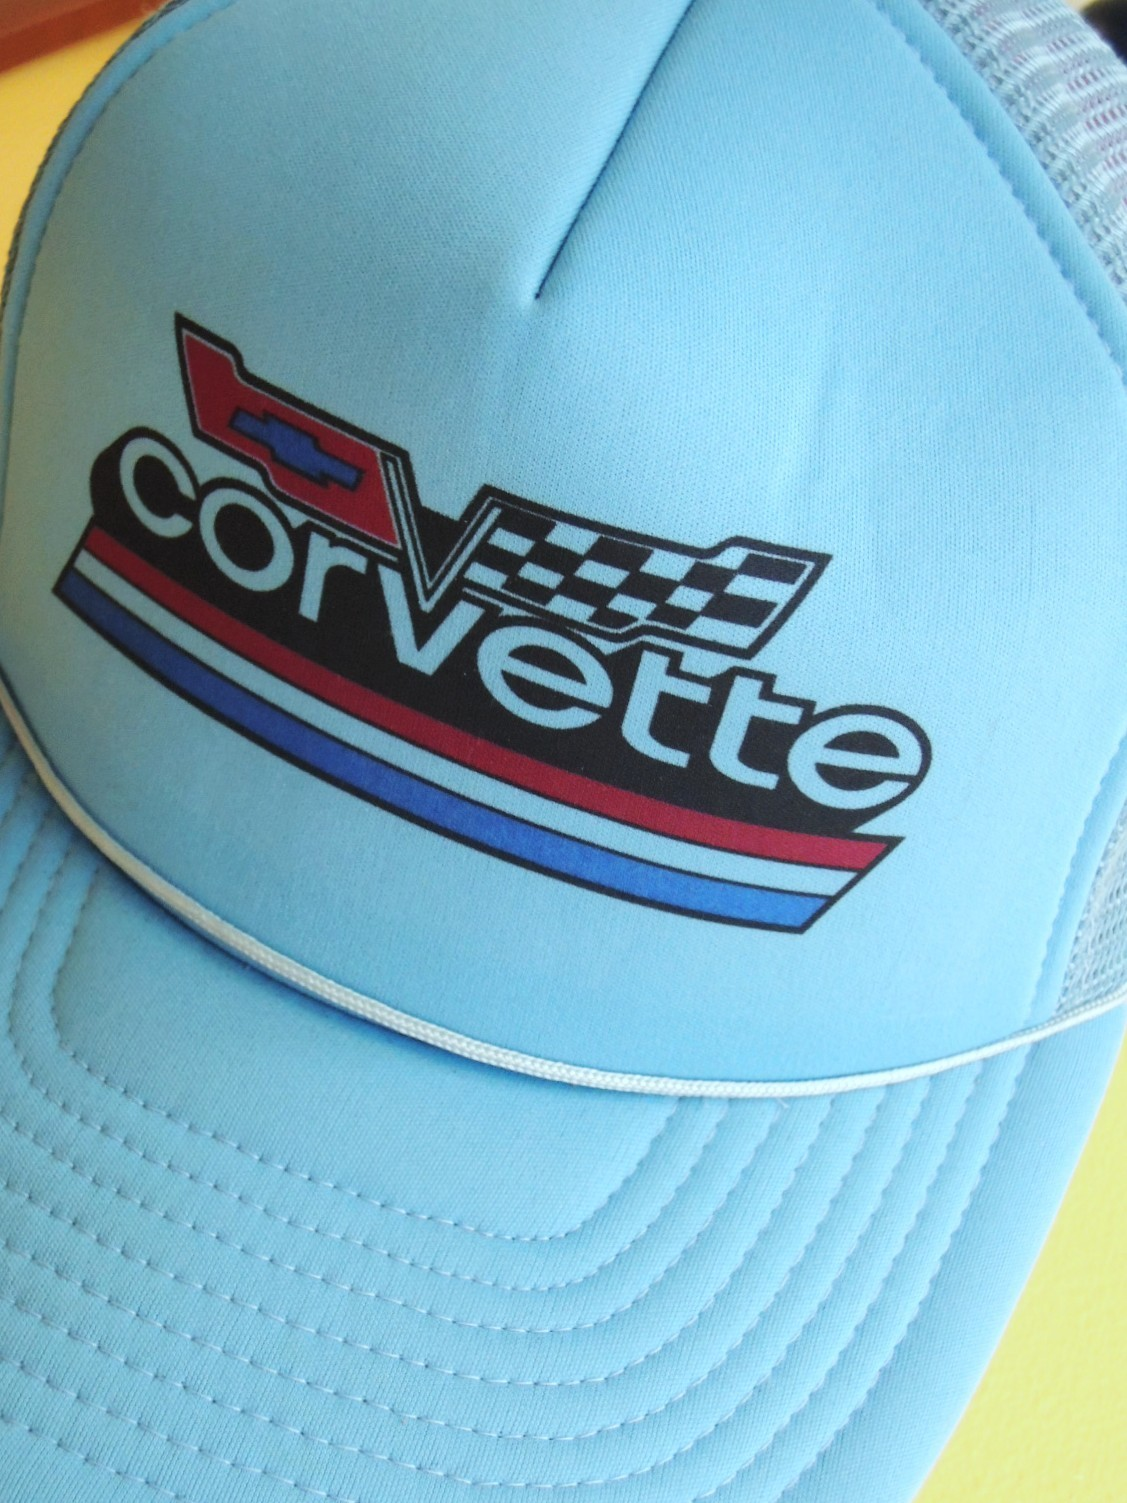 corvettechecker03.JPG